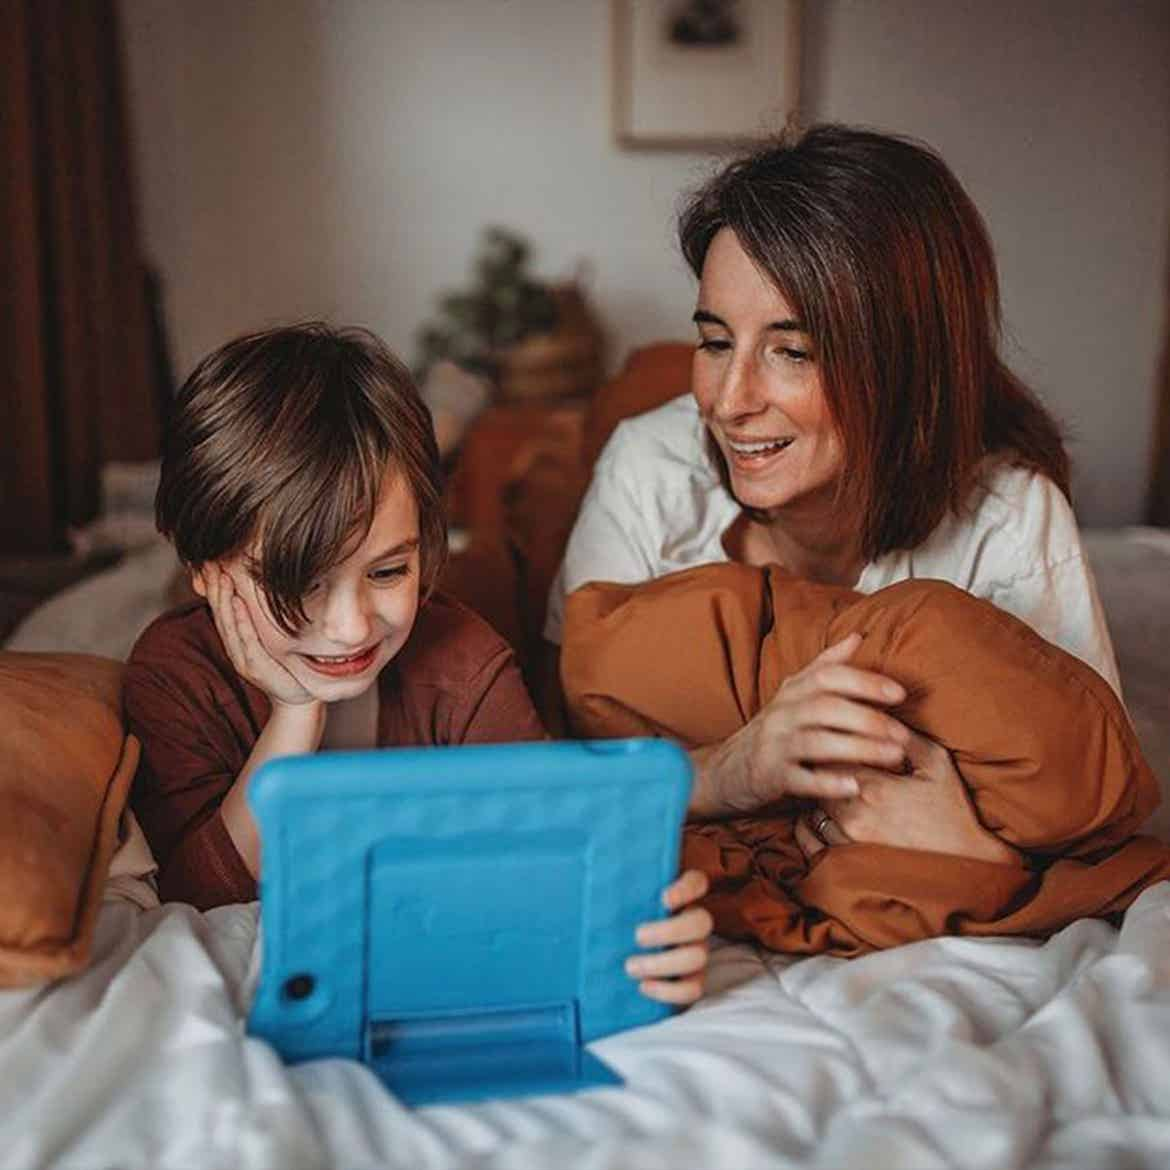 Featured Contributor, Eileen Lamb's son sits alongside her watching a tablet.